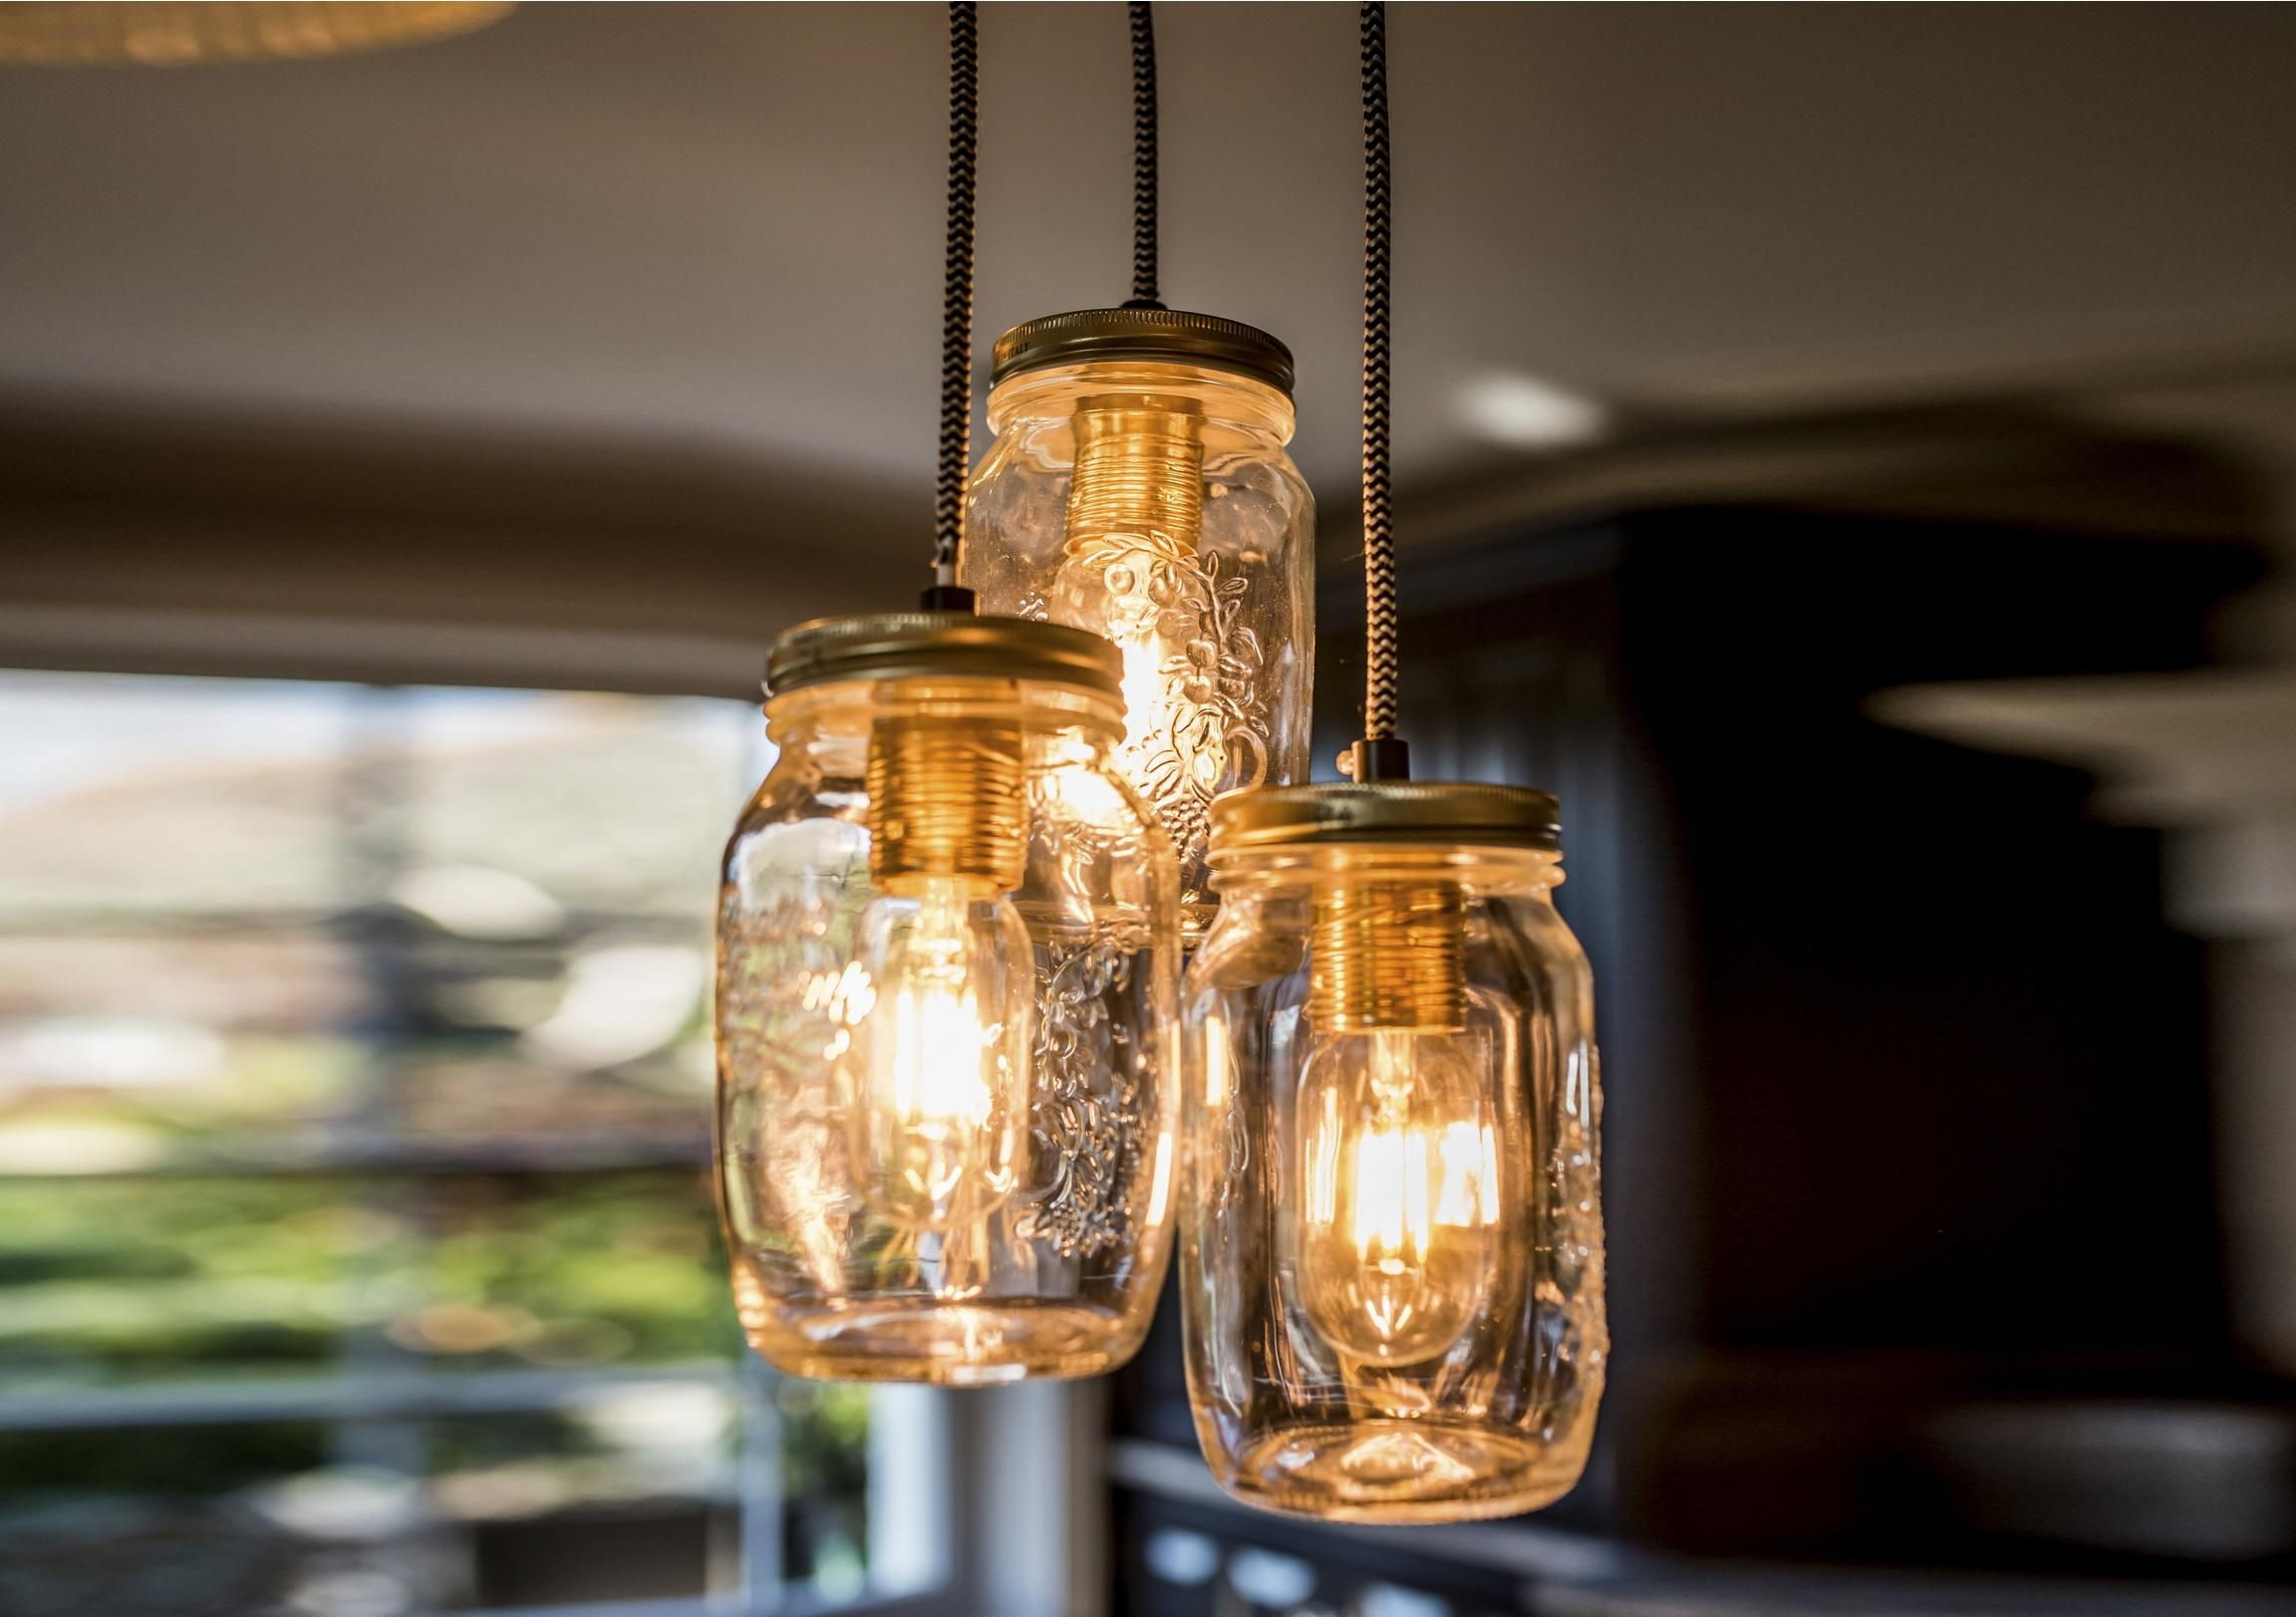 lights mason kit promising fan jar awesome fixtures complete quart interior light chandelier ceiling with home new glamorous lighting